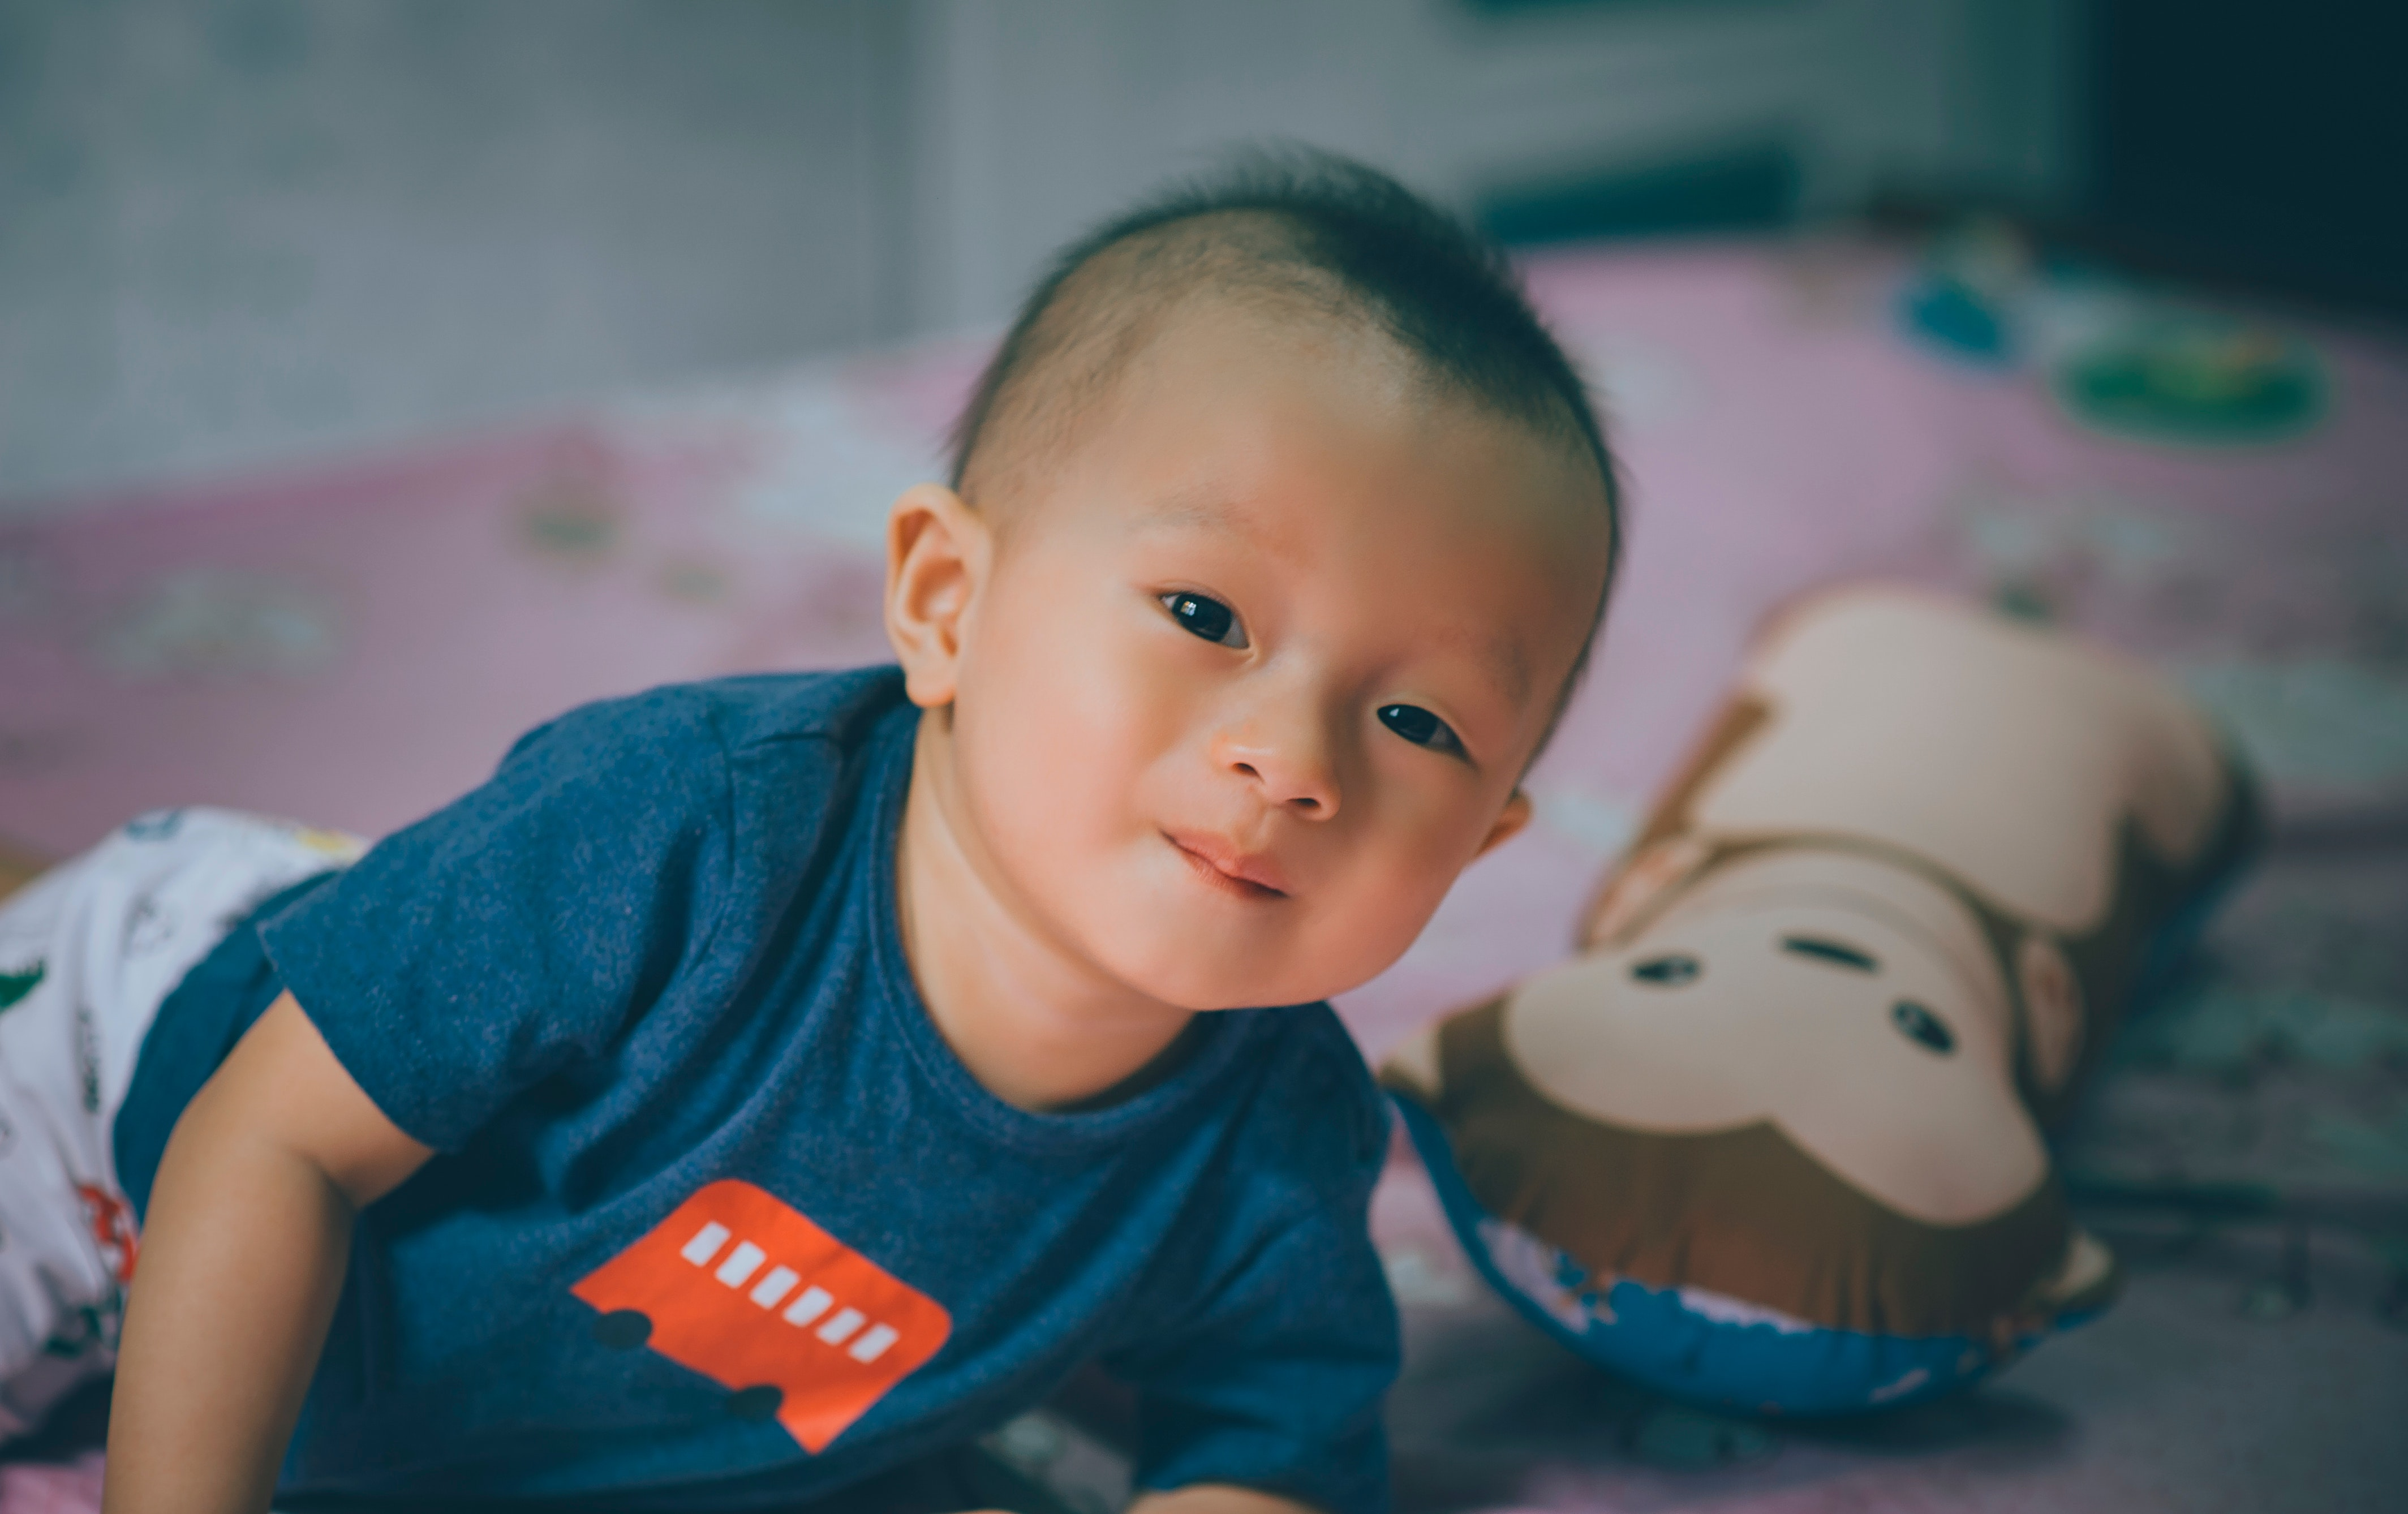 baby boy, lying on bed with teddy, smiling - when kids share a room